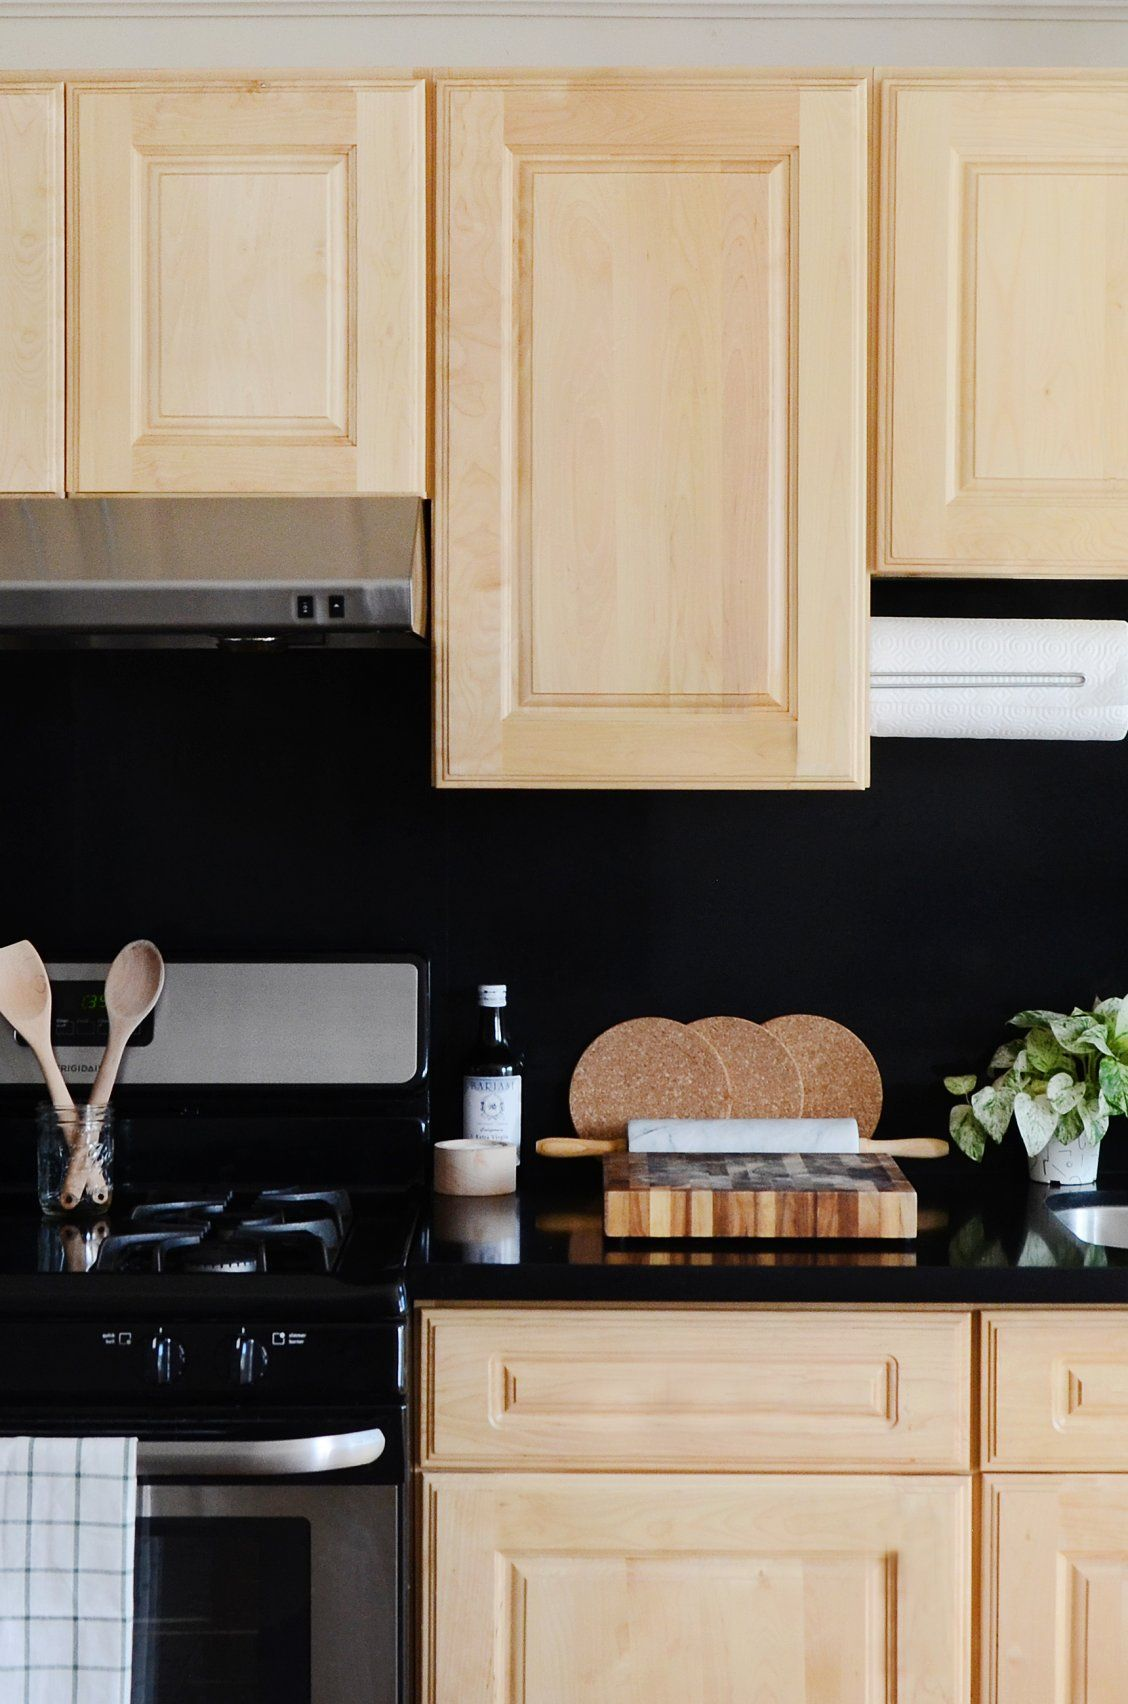 Watch How This Simple Change Transforms These Cabinets